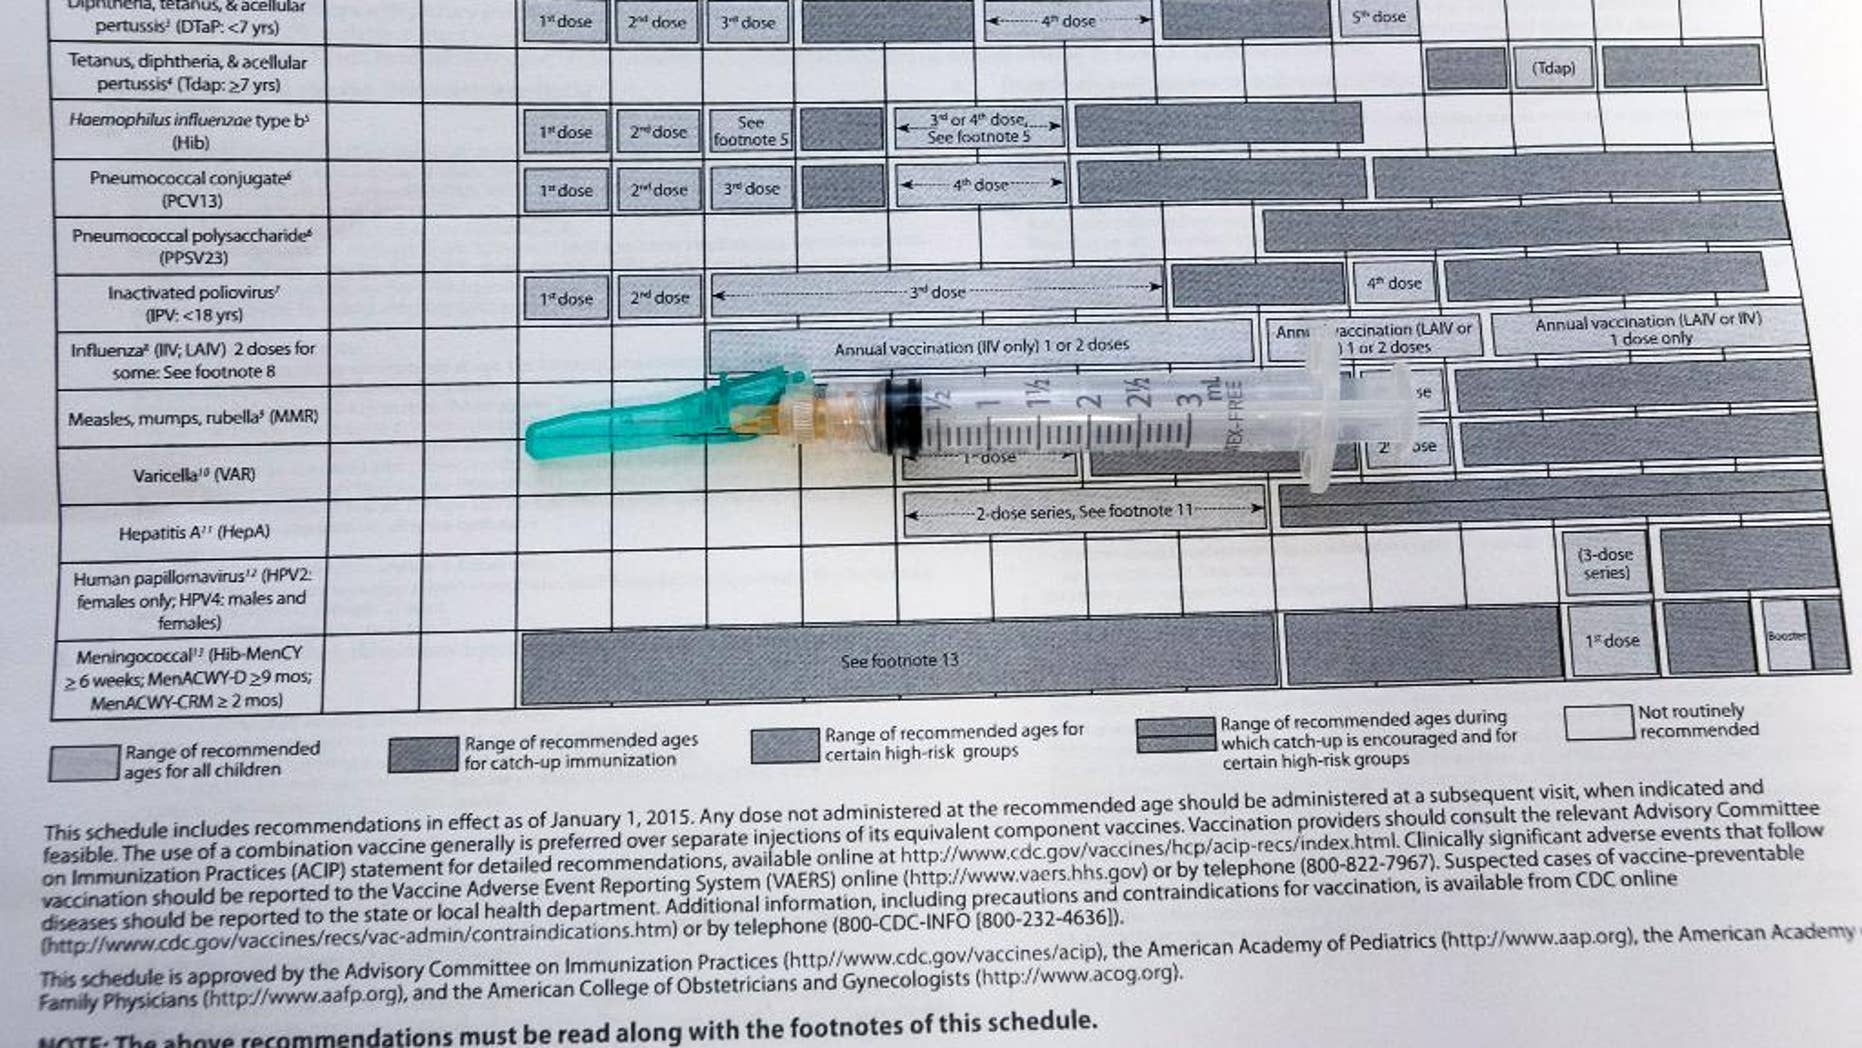 FILE - This Thursday, Jan. 29, 2015 file photo shows a syringe on a printed chart with the recommended immunization schedule in the United States for people up to 18 years of age, at a pediatrician's office in Northridge, Calif. Vaccinations can cause minor side effects including redness at the injection site and sometimes mild fever, but medical experts say serious complications are rare and much less dangerous than the diseases that vaccines prevent. (AP Photo/Damian Dovarganes)